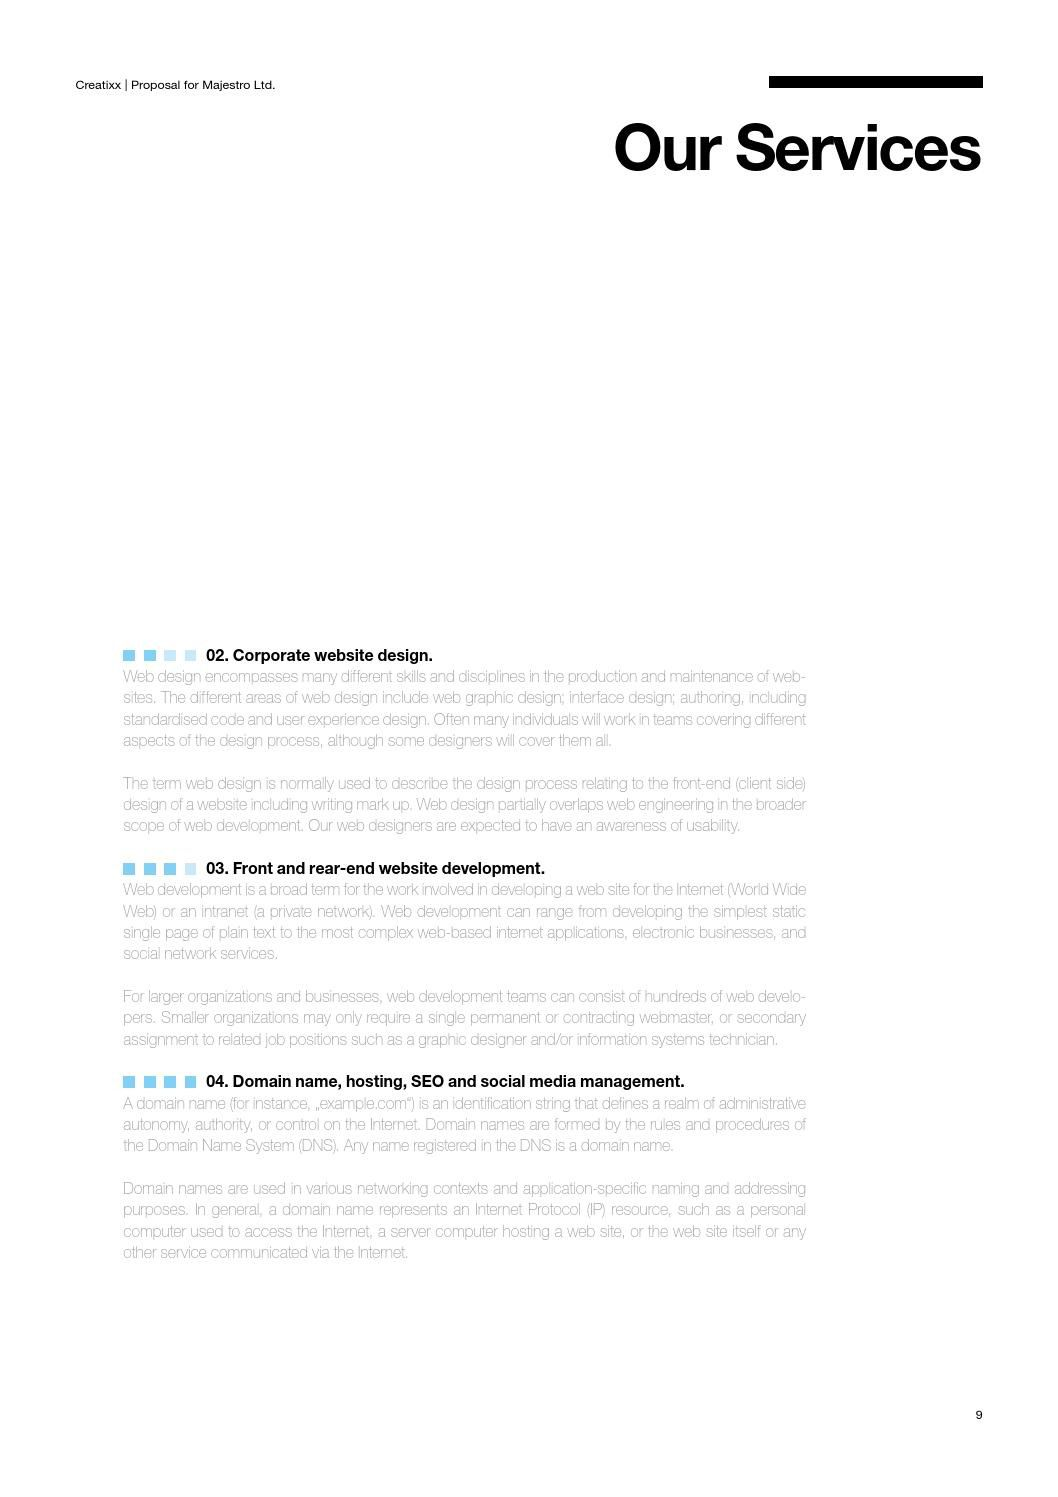 007 Unbelievable Web Design Proposal Template High Definition  Designer Writing Word Document SimpleFull